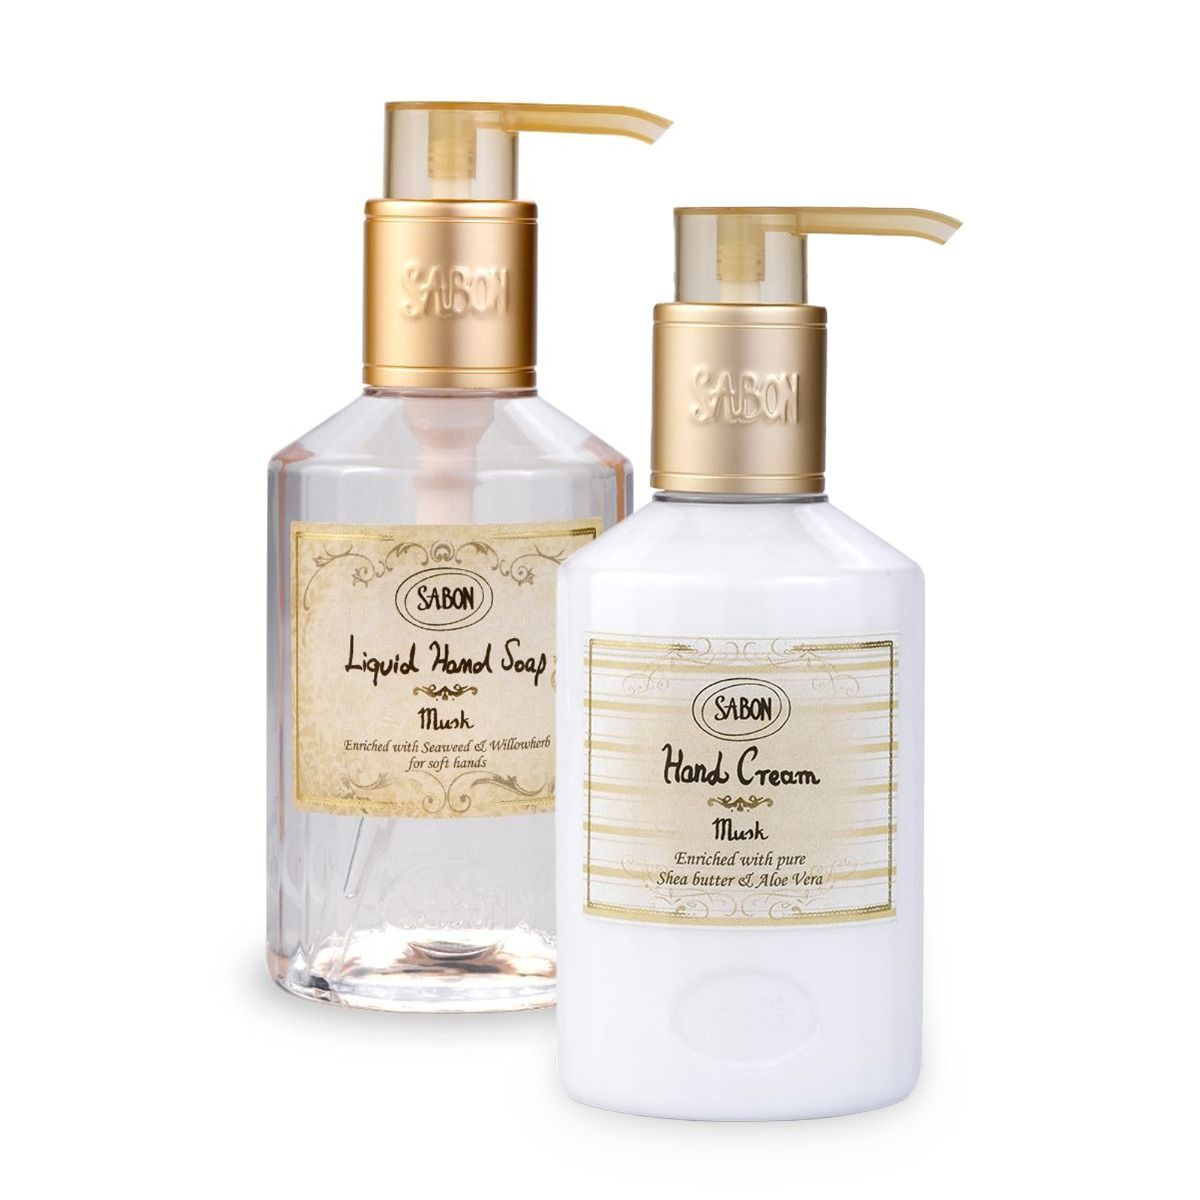 Holiday Hand Care Duo - Musk